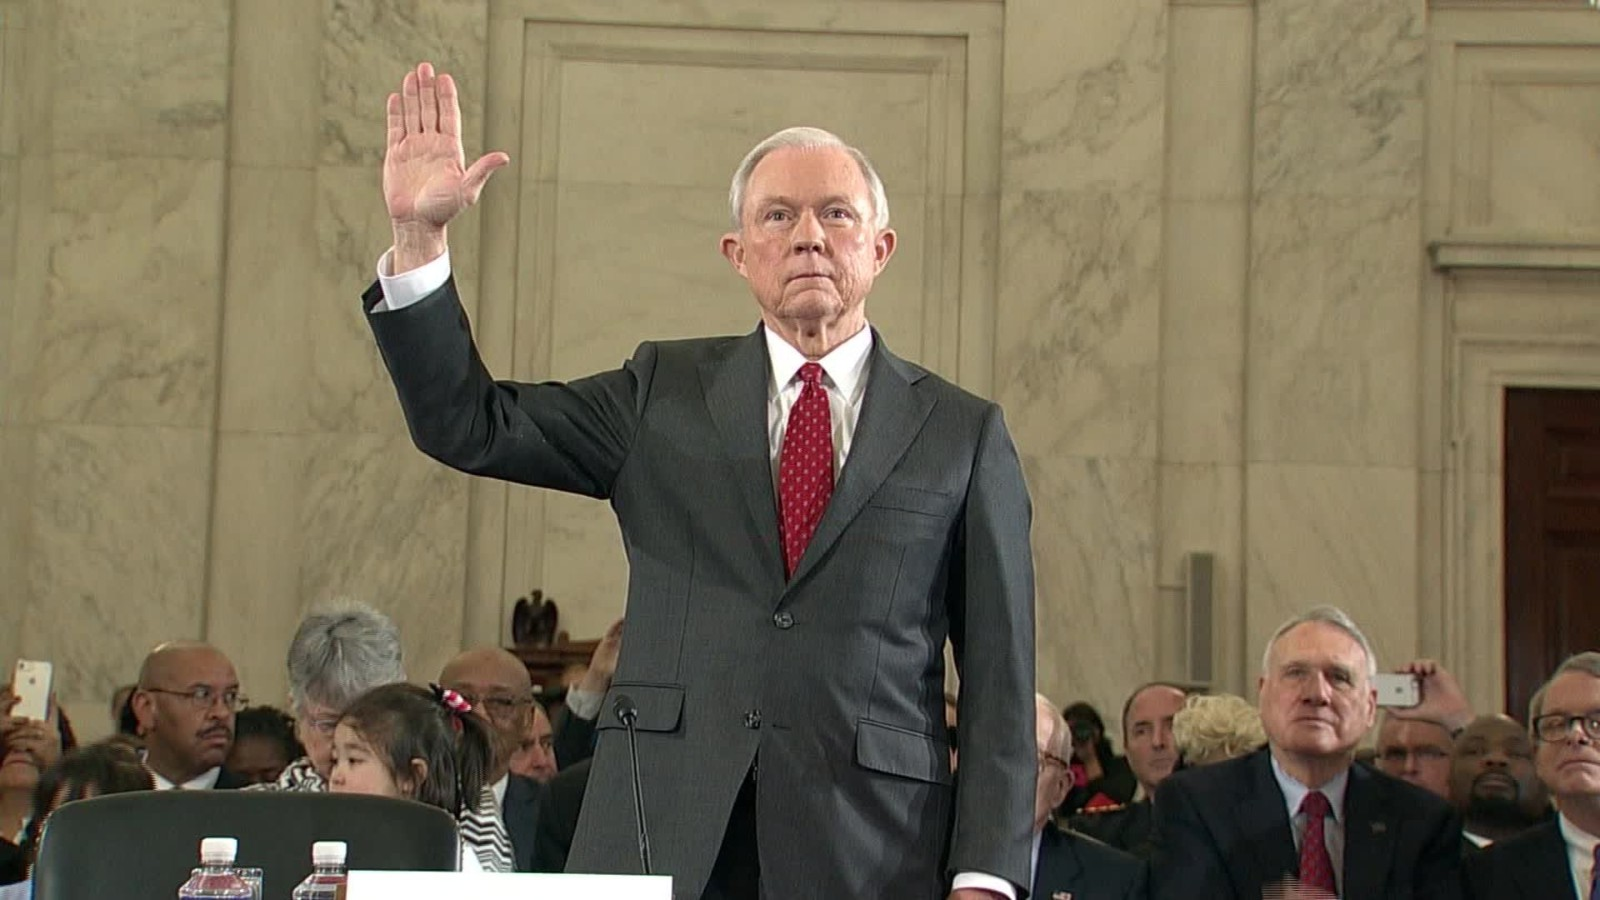 jeff sessions takes on racism charges pledges to recuse himself from clinton probes cnnpolitics